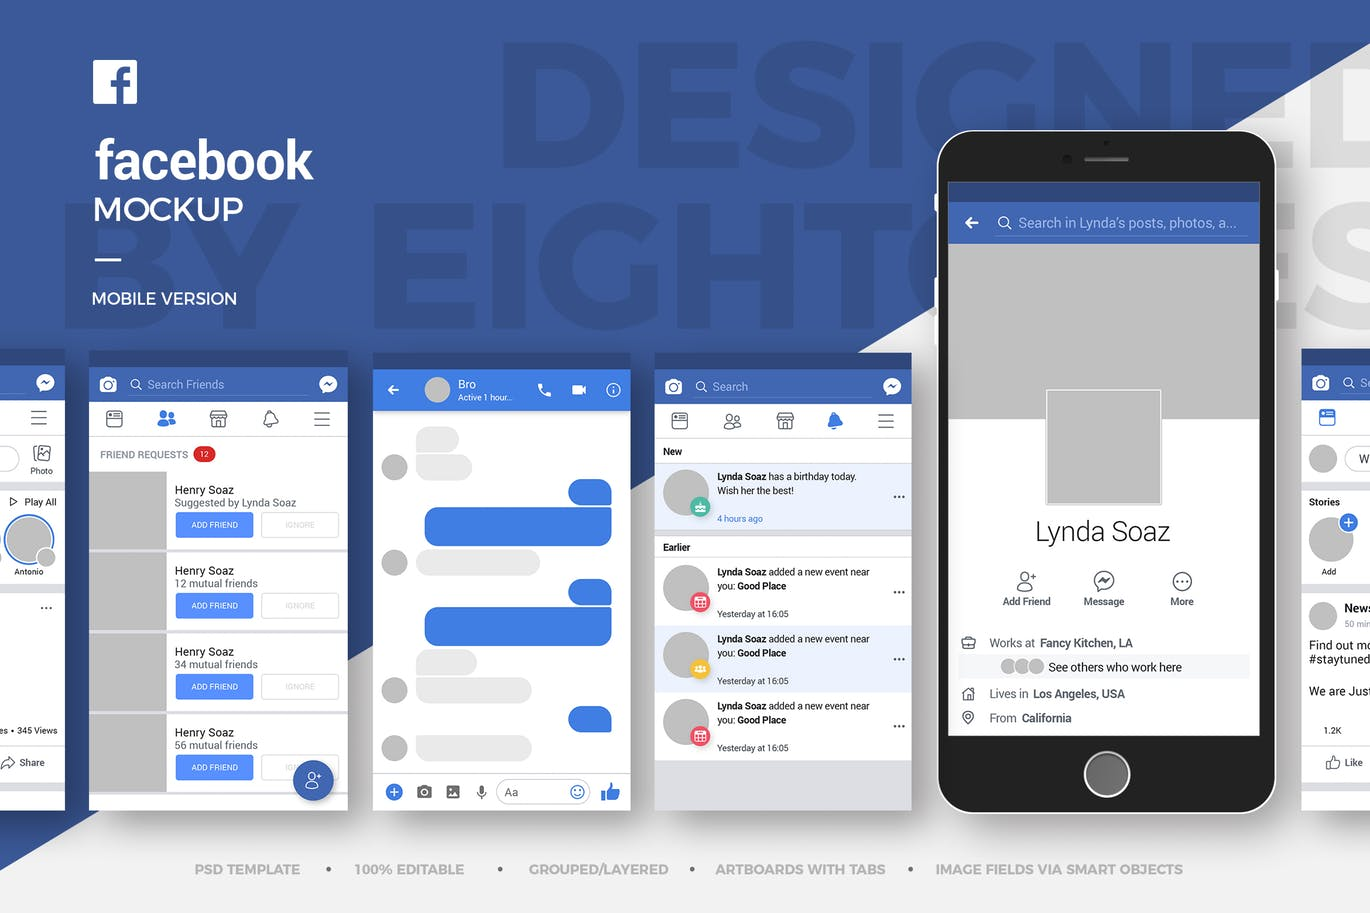 20+ Facebook Page Branding Mockup Templates | Decolore Net